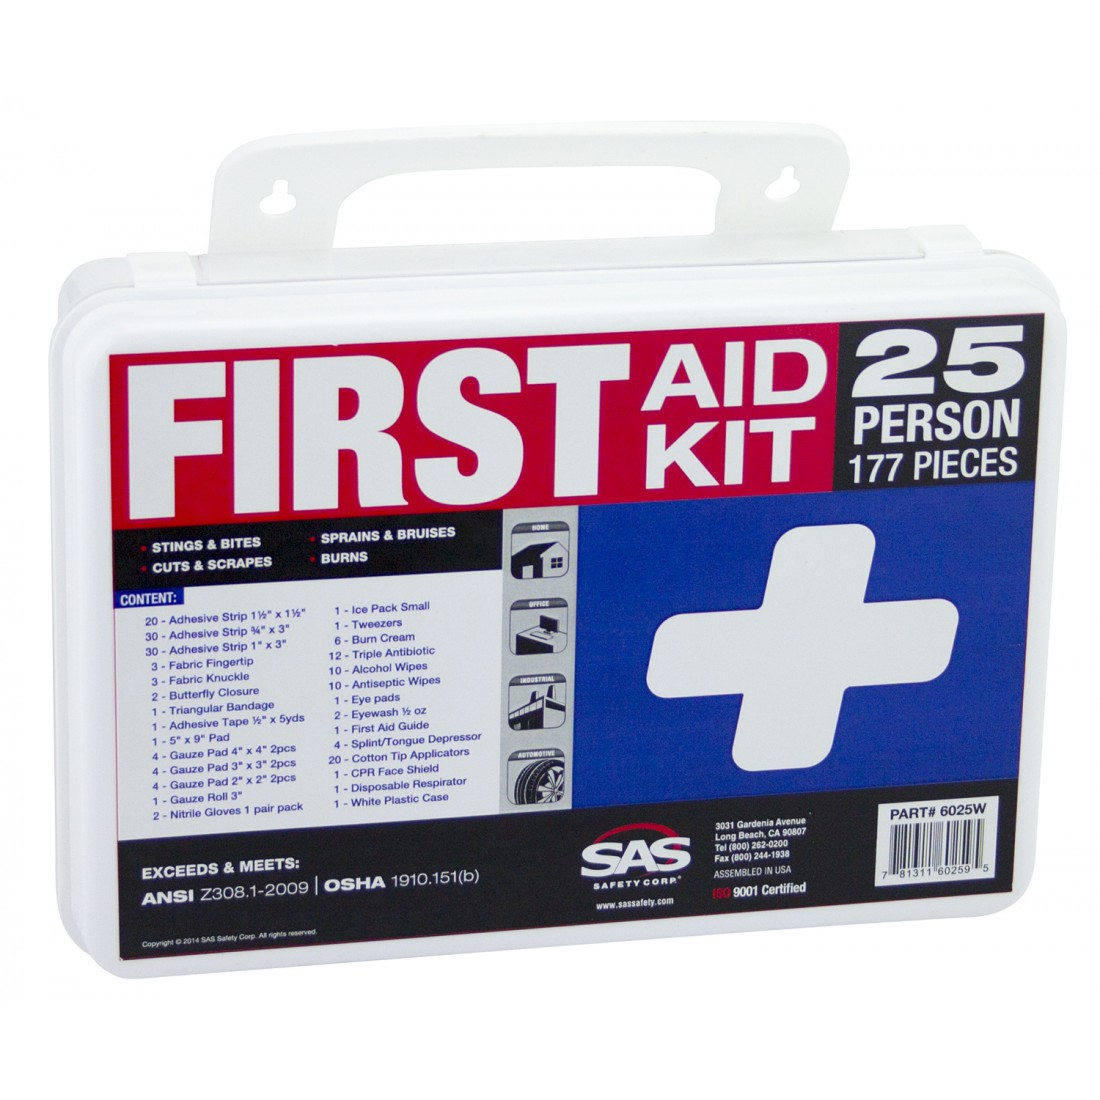 6025W_First_Aid_Kit_SAS_Safety